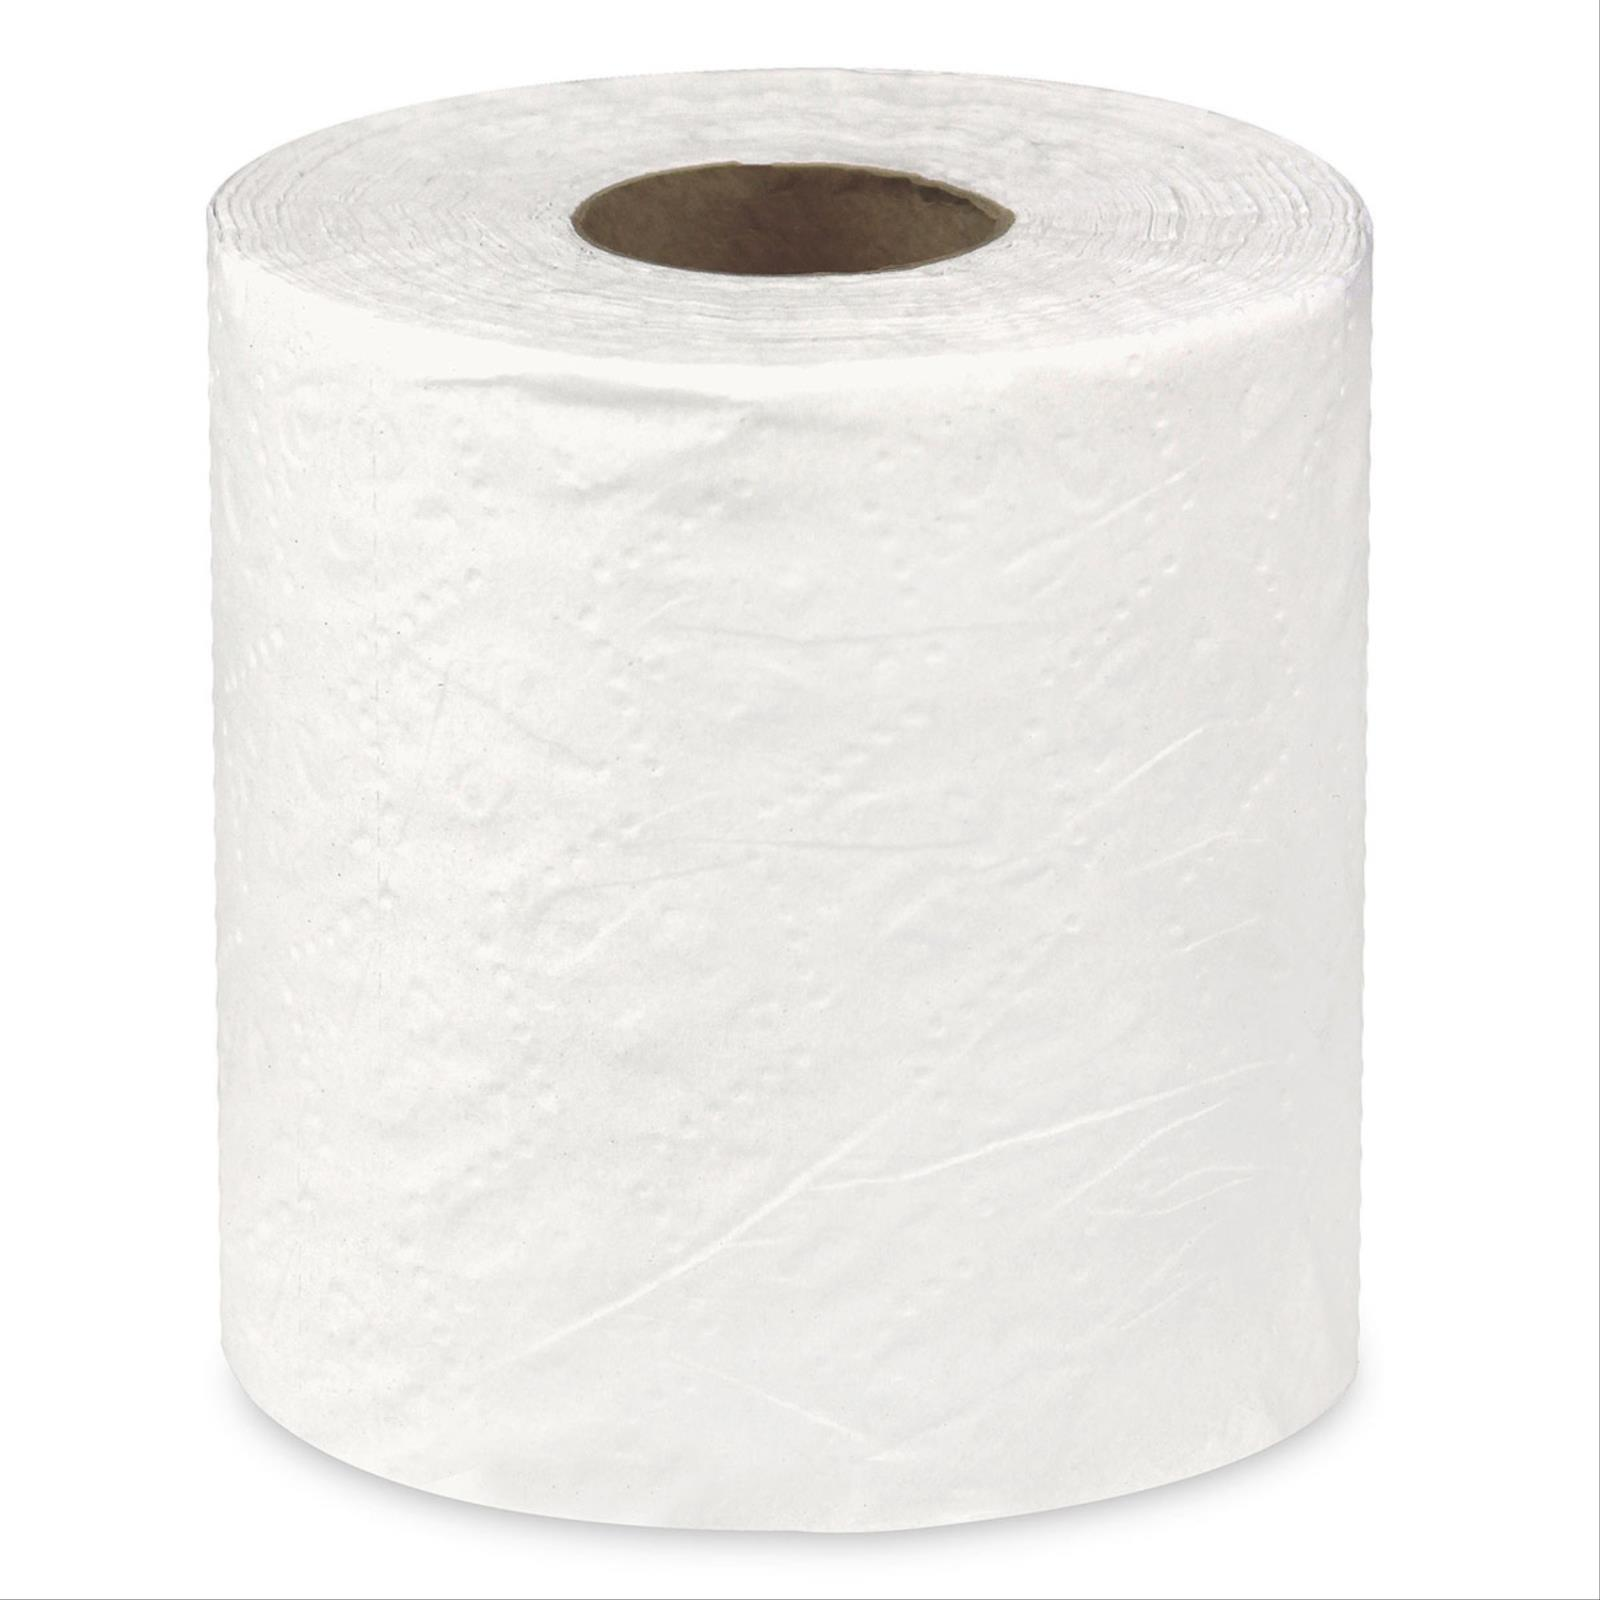 MAYFAIR® 2-Ply Bathroom Tissue